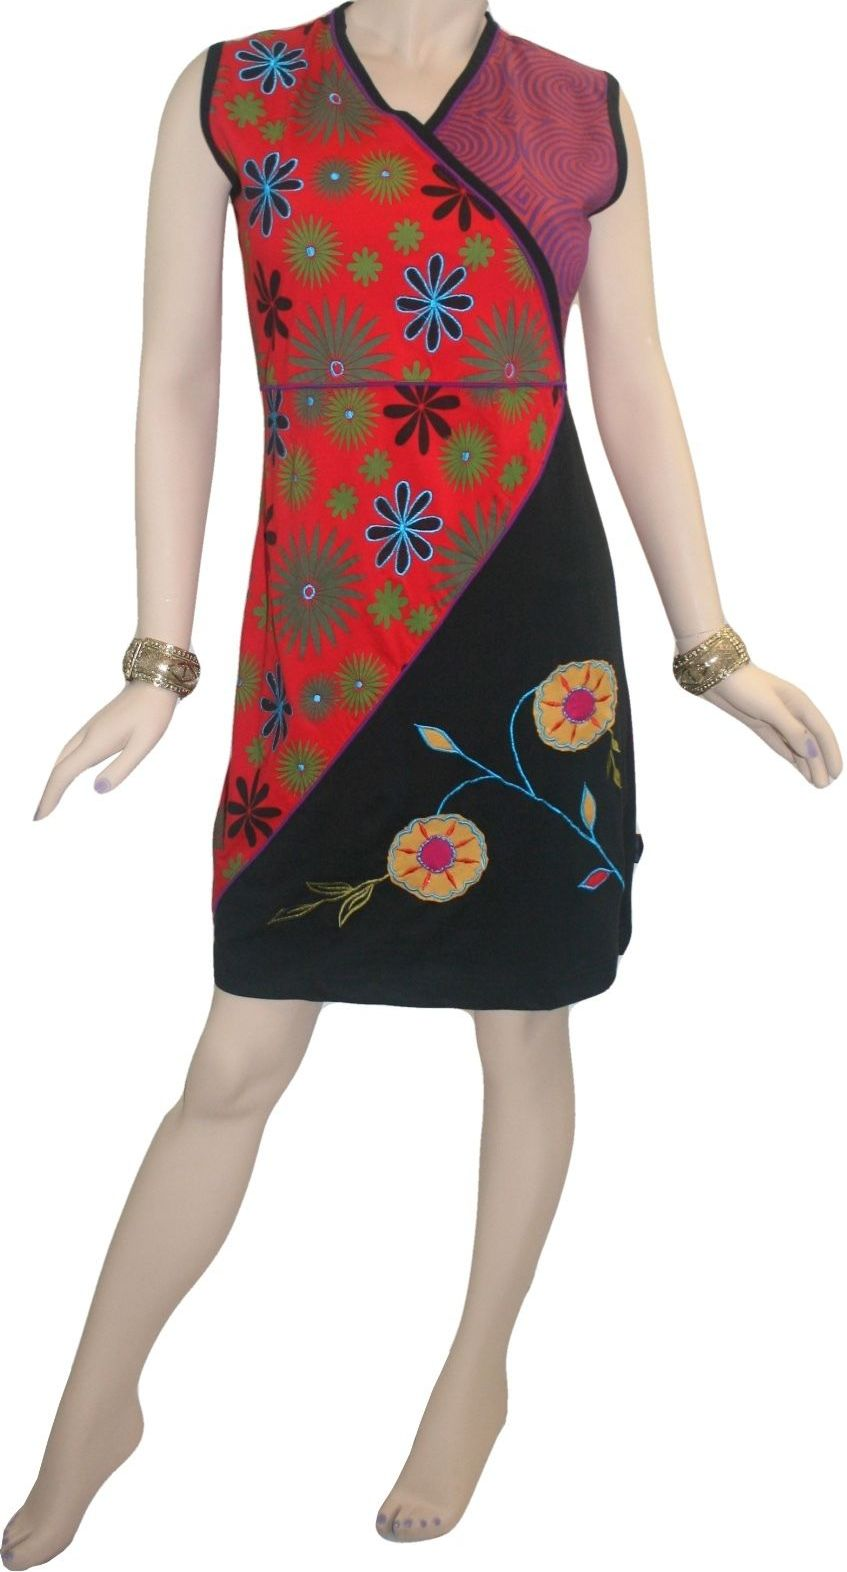 RD 14 Agan Traders Nepal Bohemian Knit Light Weight Cotton Mid Length Summer Dress - Agan Traders, RDR Multi 14